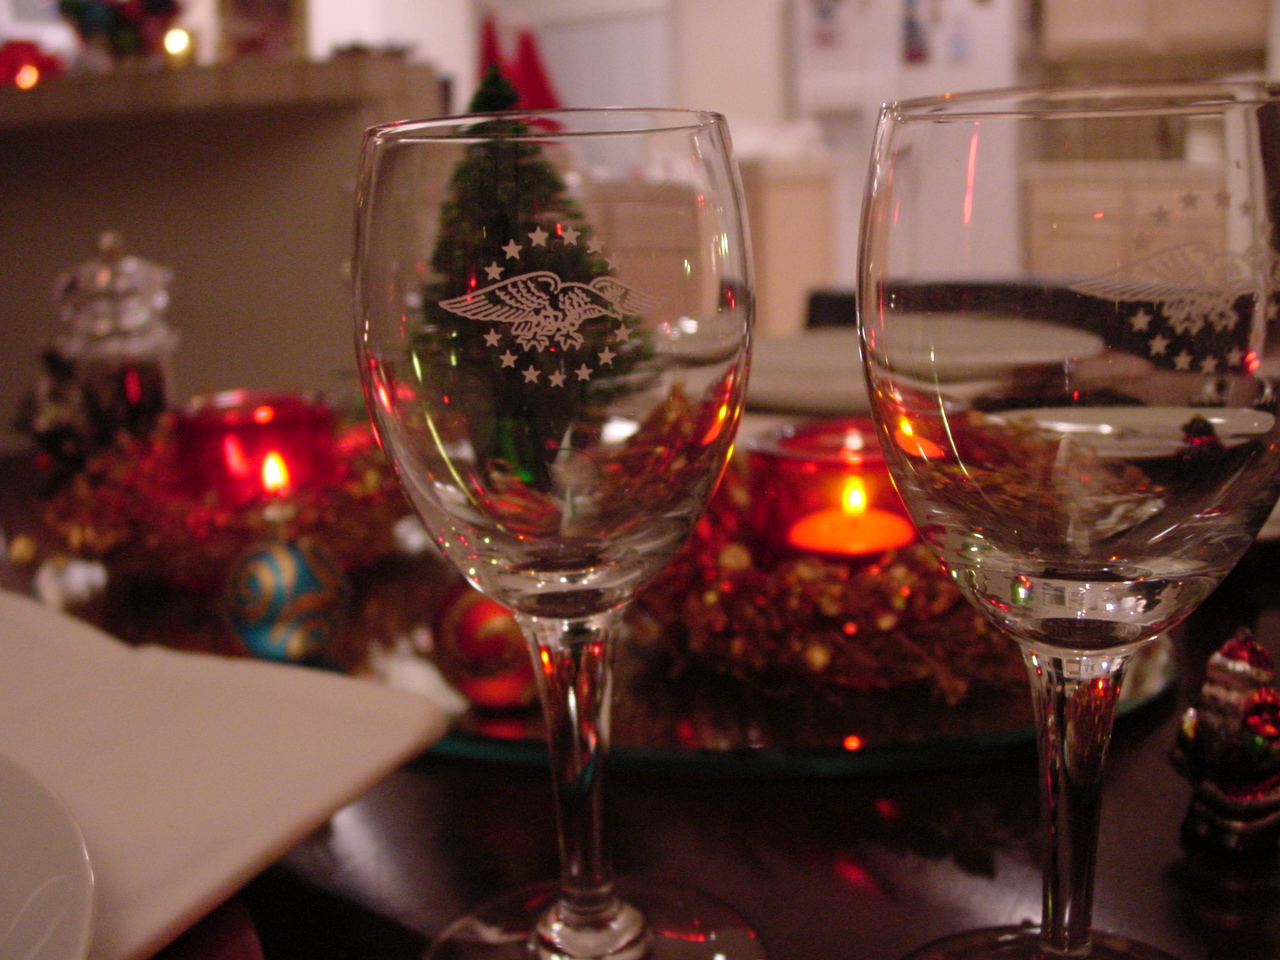 The 1950s President Special eagle logo can be seen on the glasses in this holiday setting.